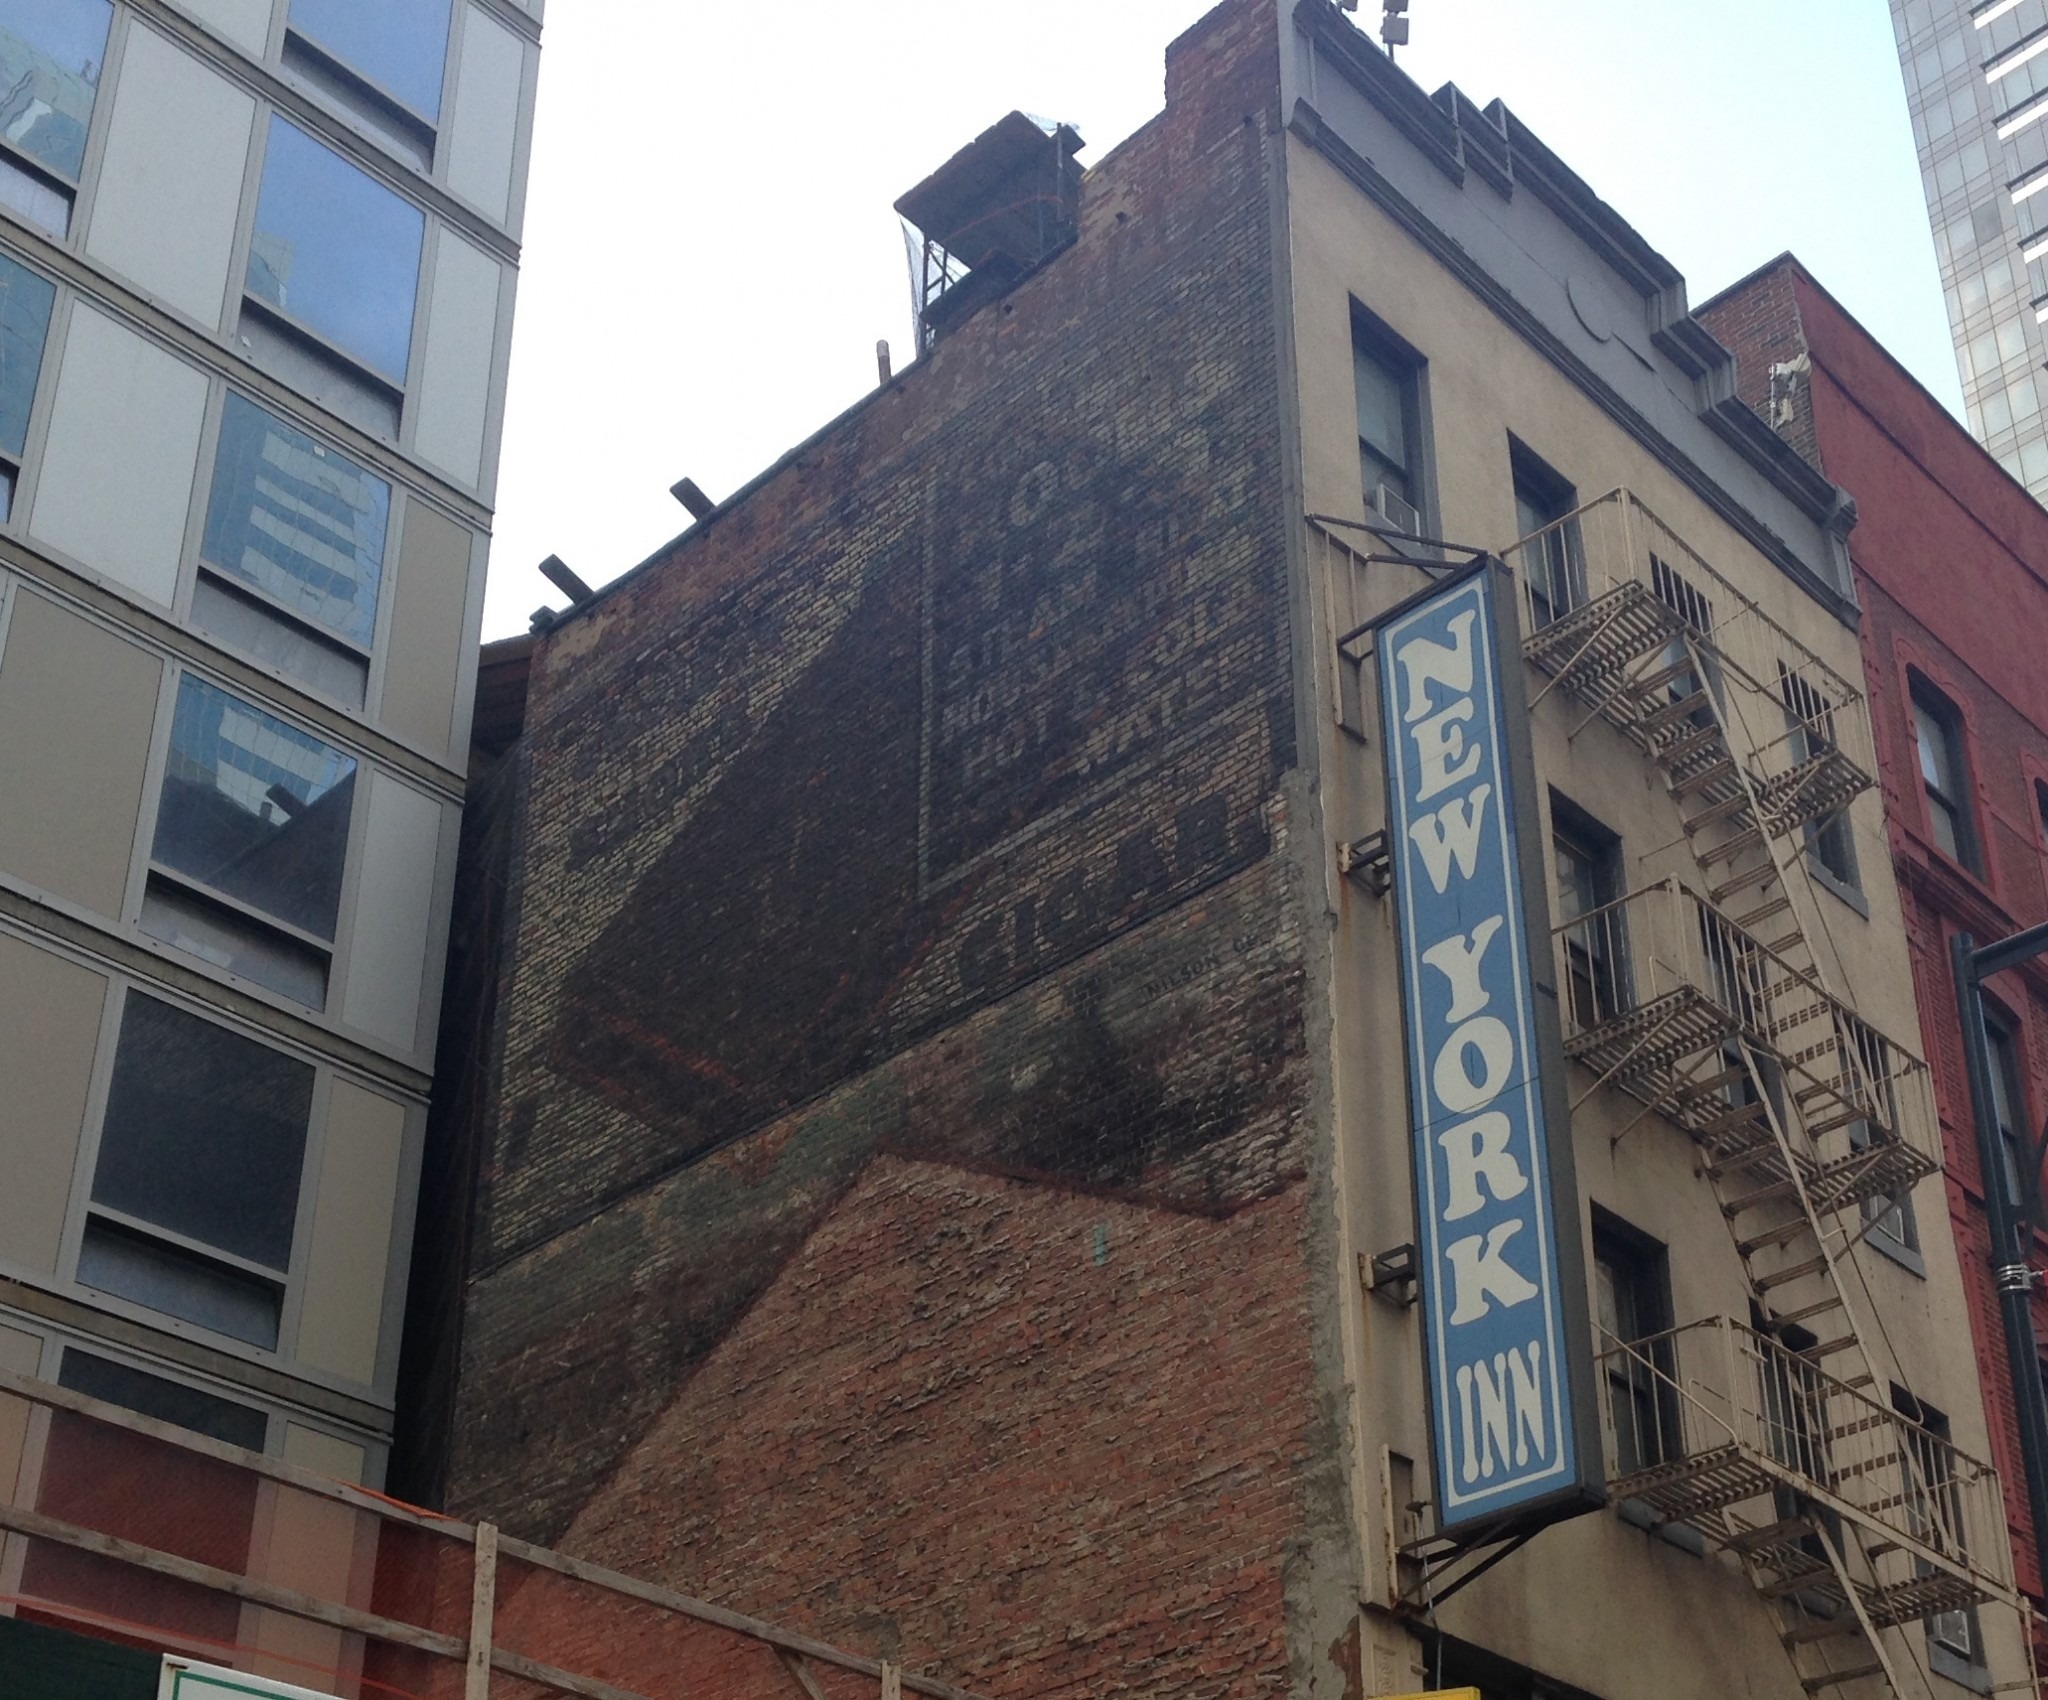 faded sign on the side of an NYC building